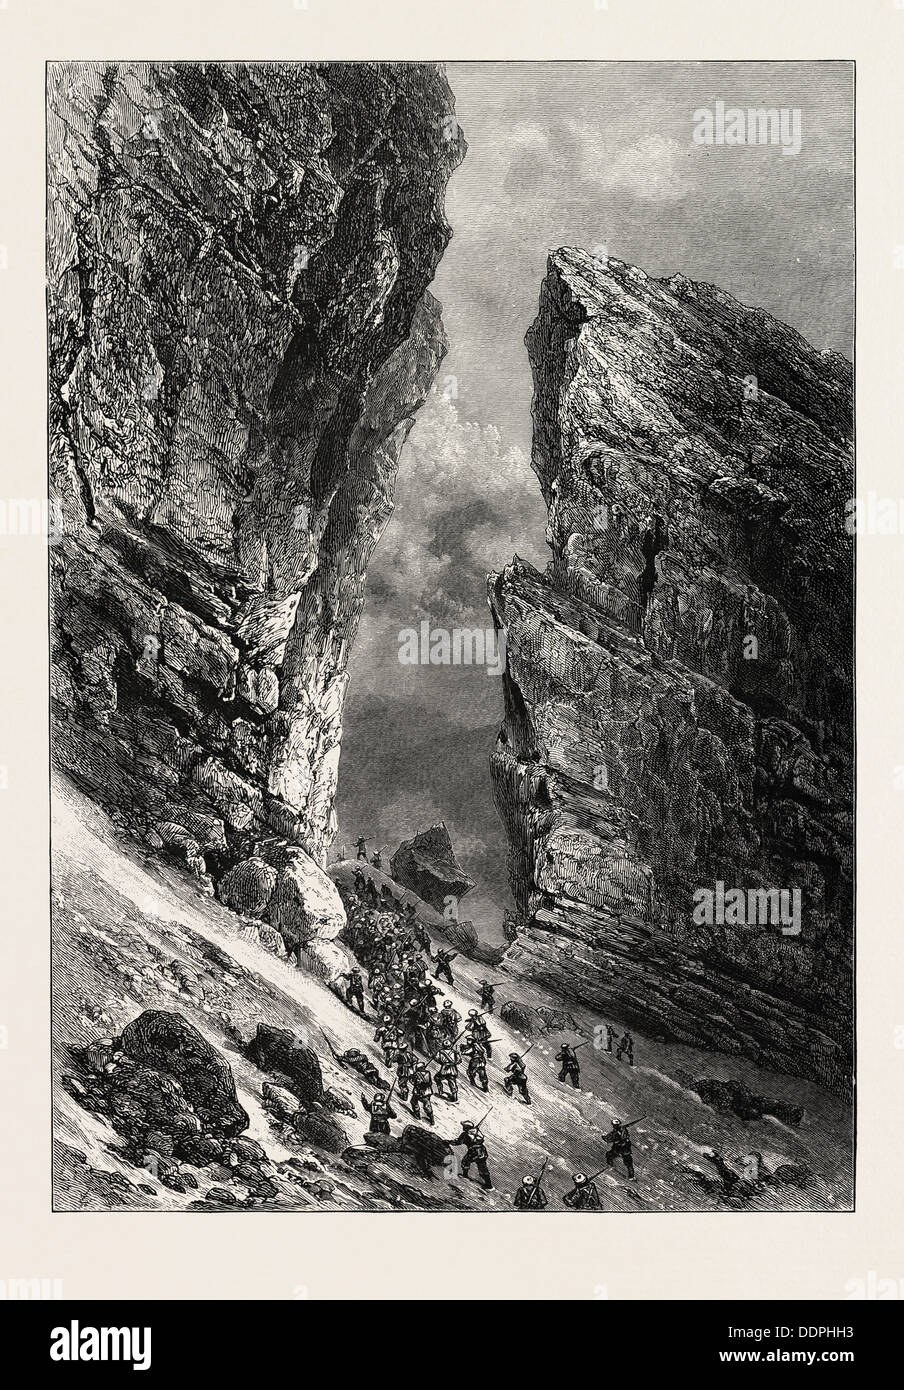 THE BRECHE DE ROLAND, THE PYRENEES, FRANCE, 19th century engraving - Stock Image